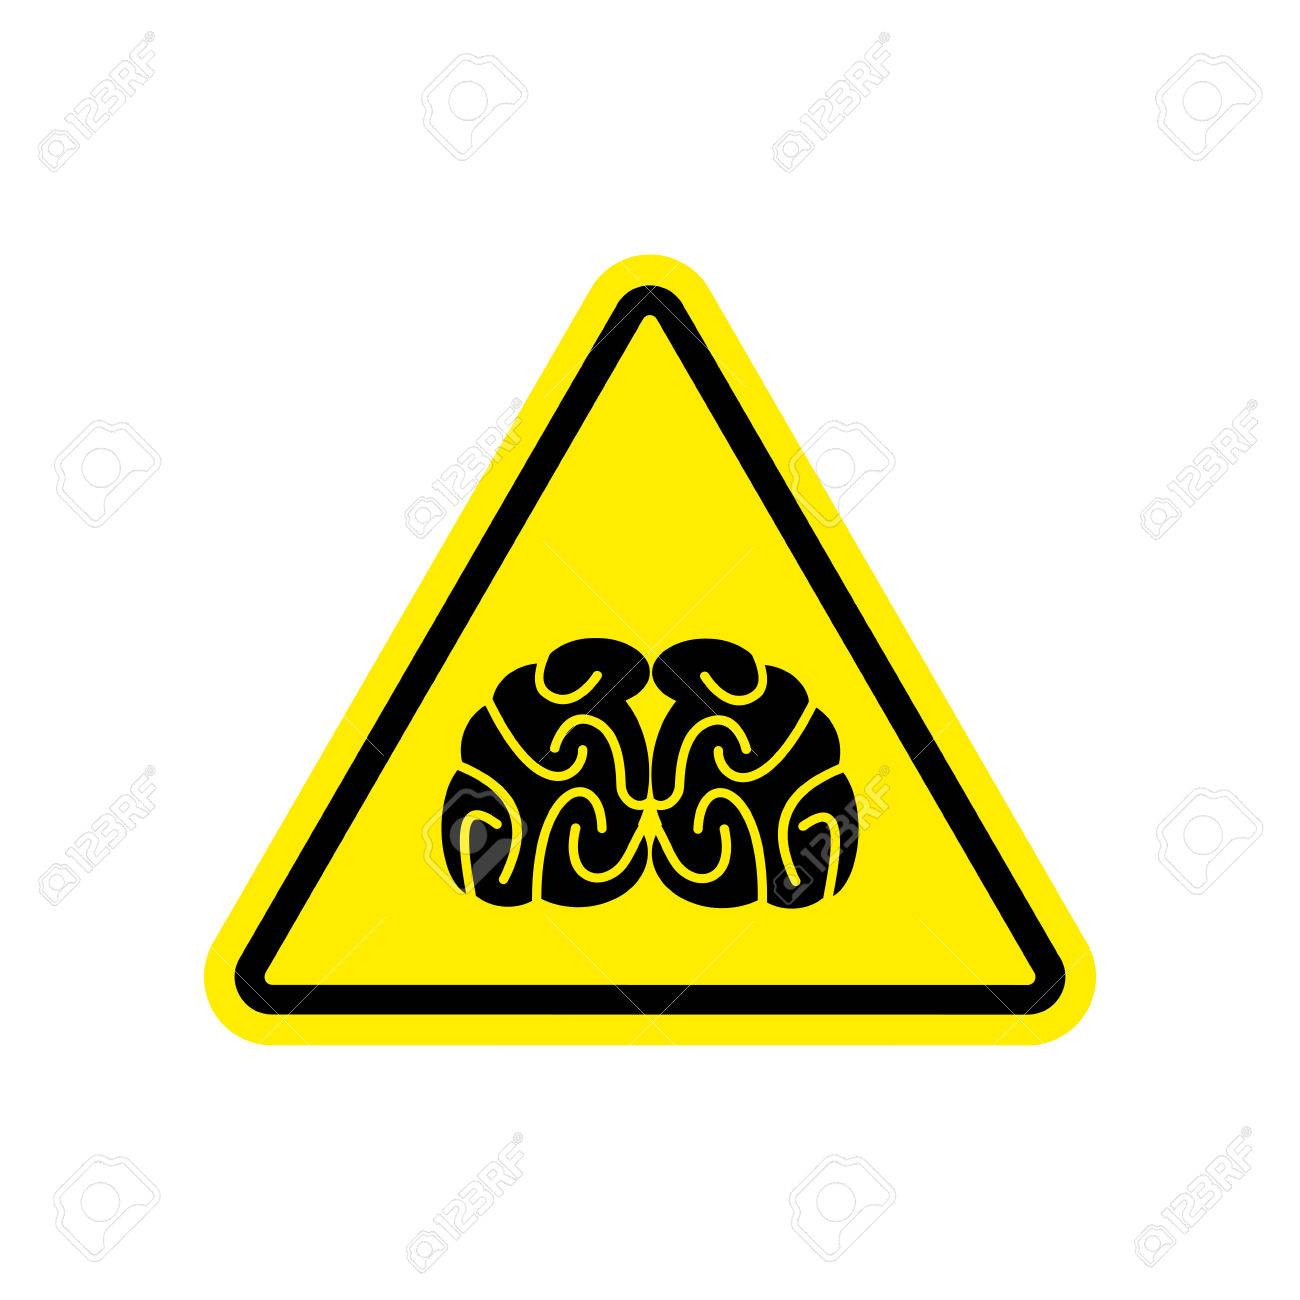 How Students Brains Are In Danger On >> Brains Warning Sign Yellow Think Hazard Attention Symbol Danger